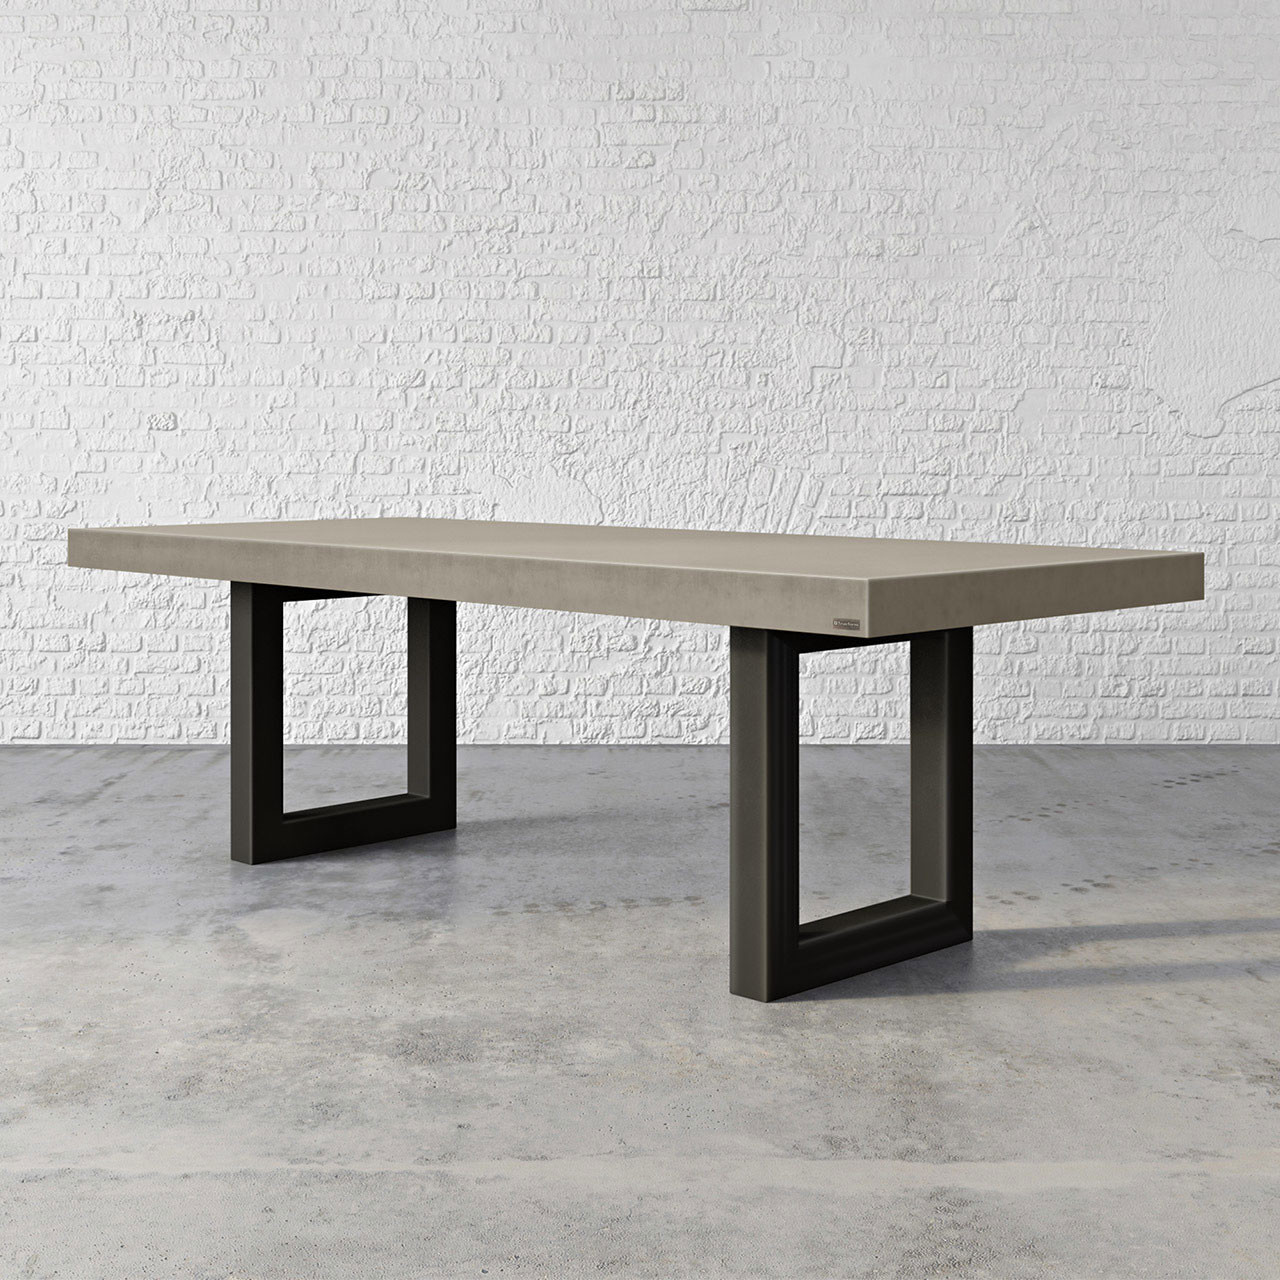 Trueforms zen concrete dining table is the focal point in any dining or family room